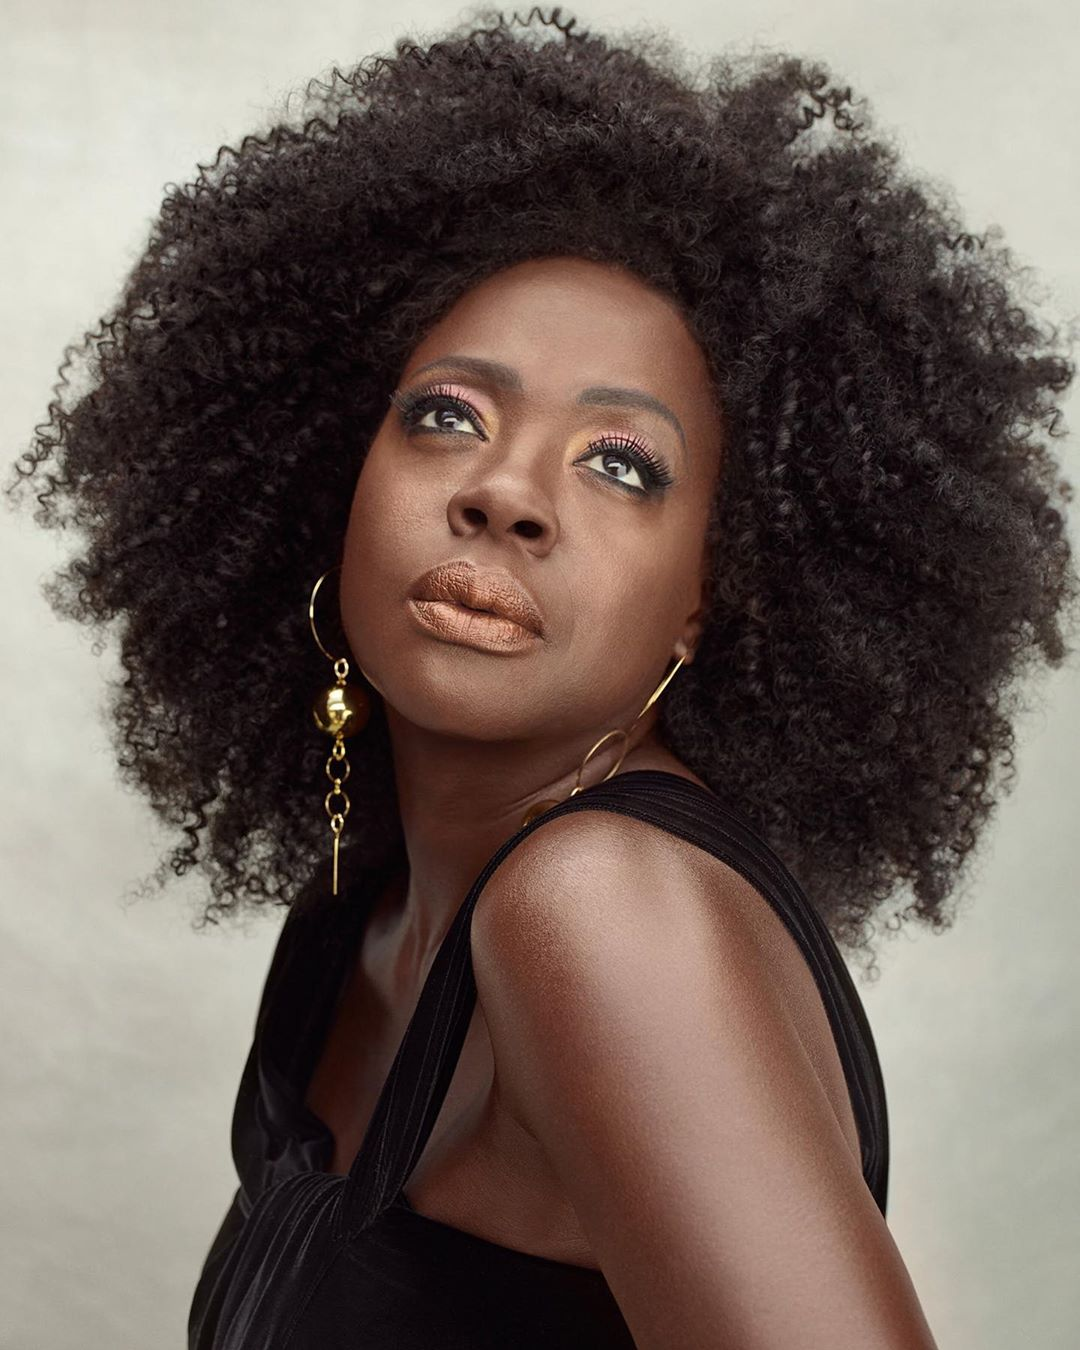 """""""My Entire Life Has Been A Protest"""" - Actress Viola Davis Covers Vanity Fair Magazine (Photos)"""